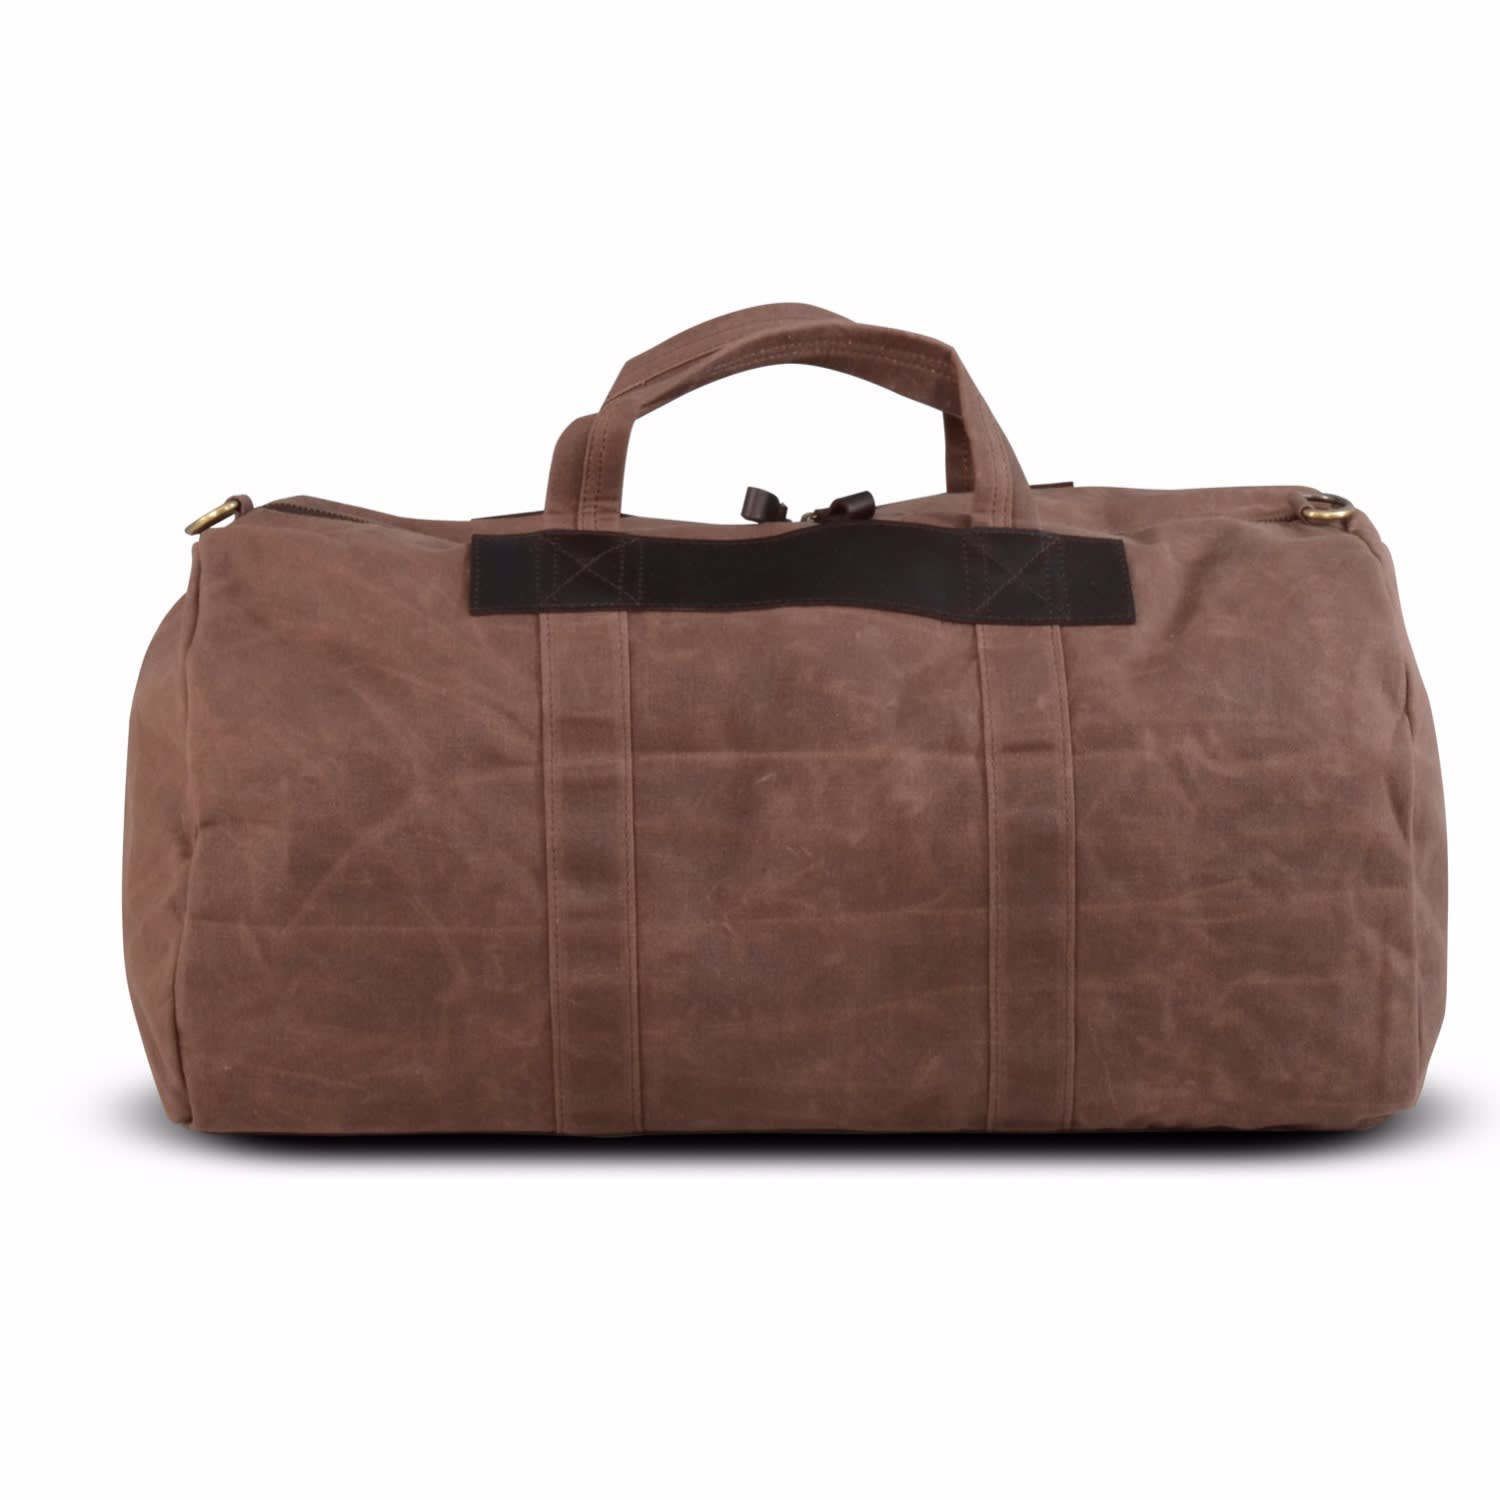 e1298c591979 Waxed Canvas   Leather Duffle Bag image